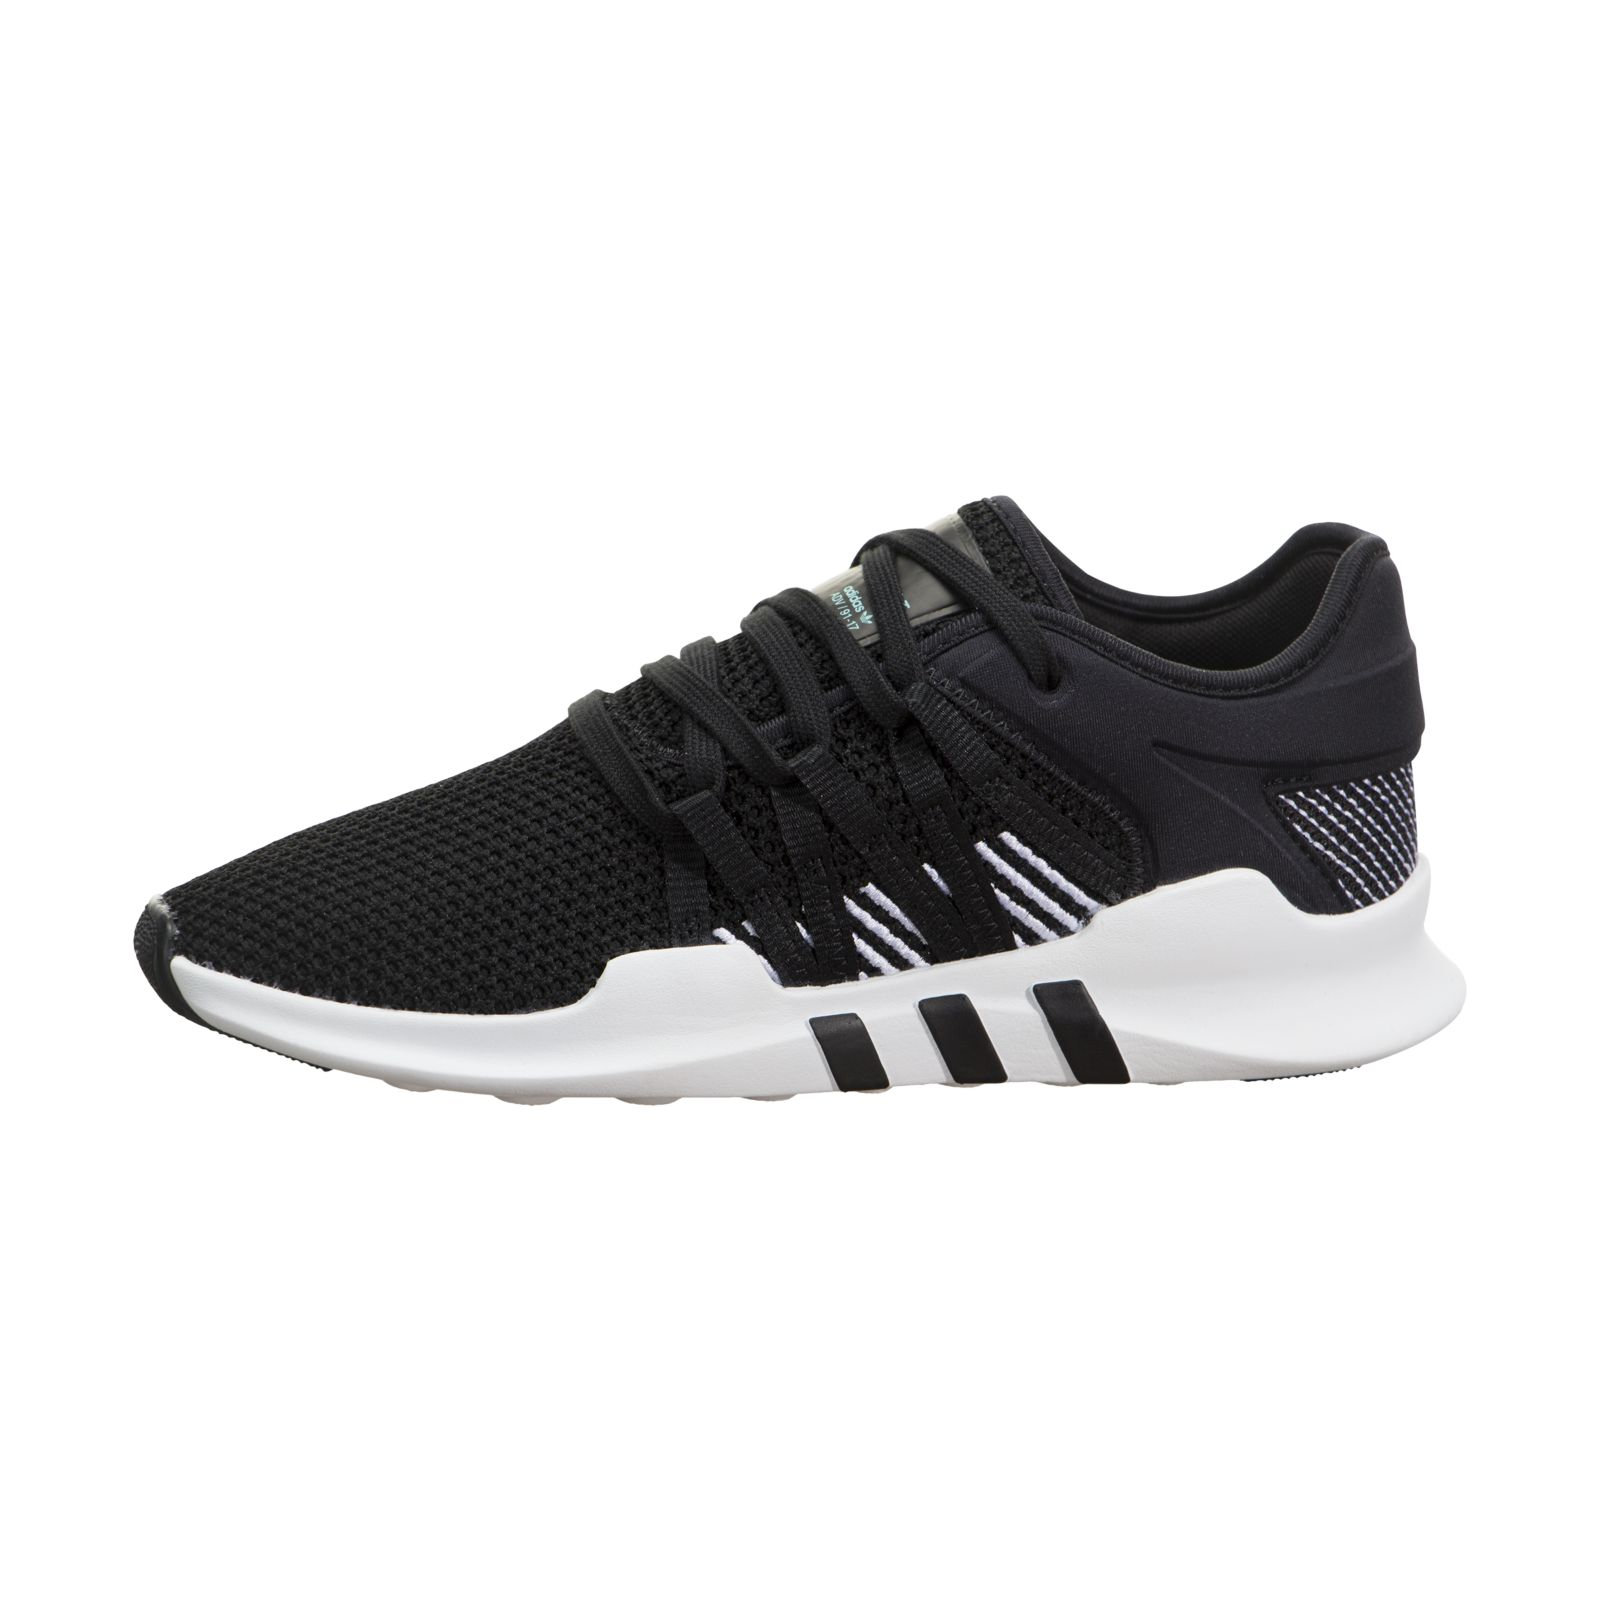 lowest price 5969e 38142 Image is loading Adidas-EQT-Support-ADV-W-by9795